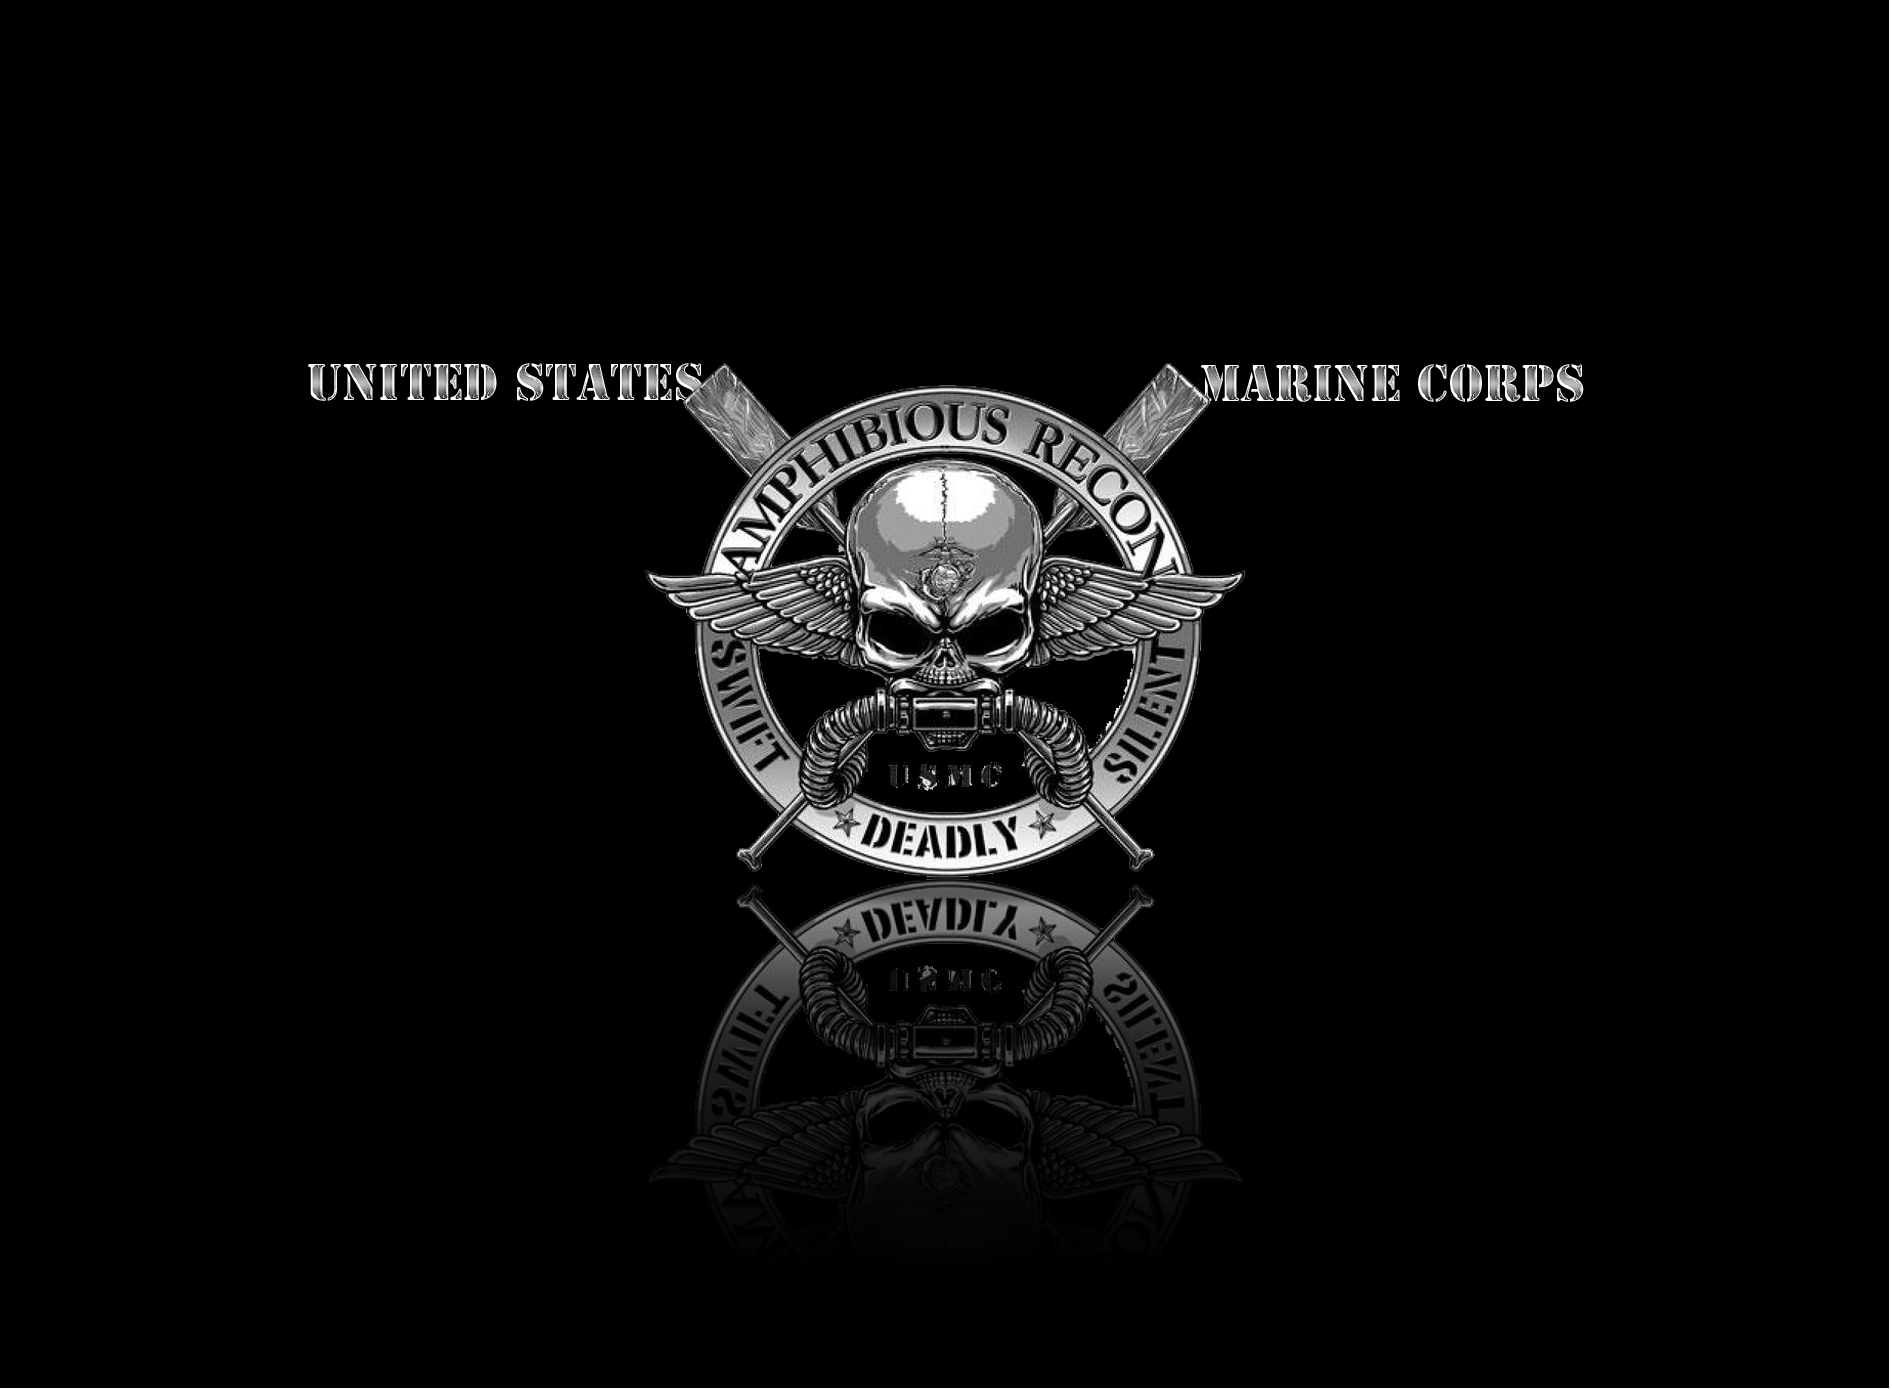 Good Wallpaper Logo Usmc - 56bd73b6ba55fa40e4c6688ce9901d94  Graphic_477454.png